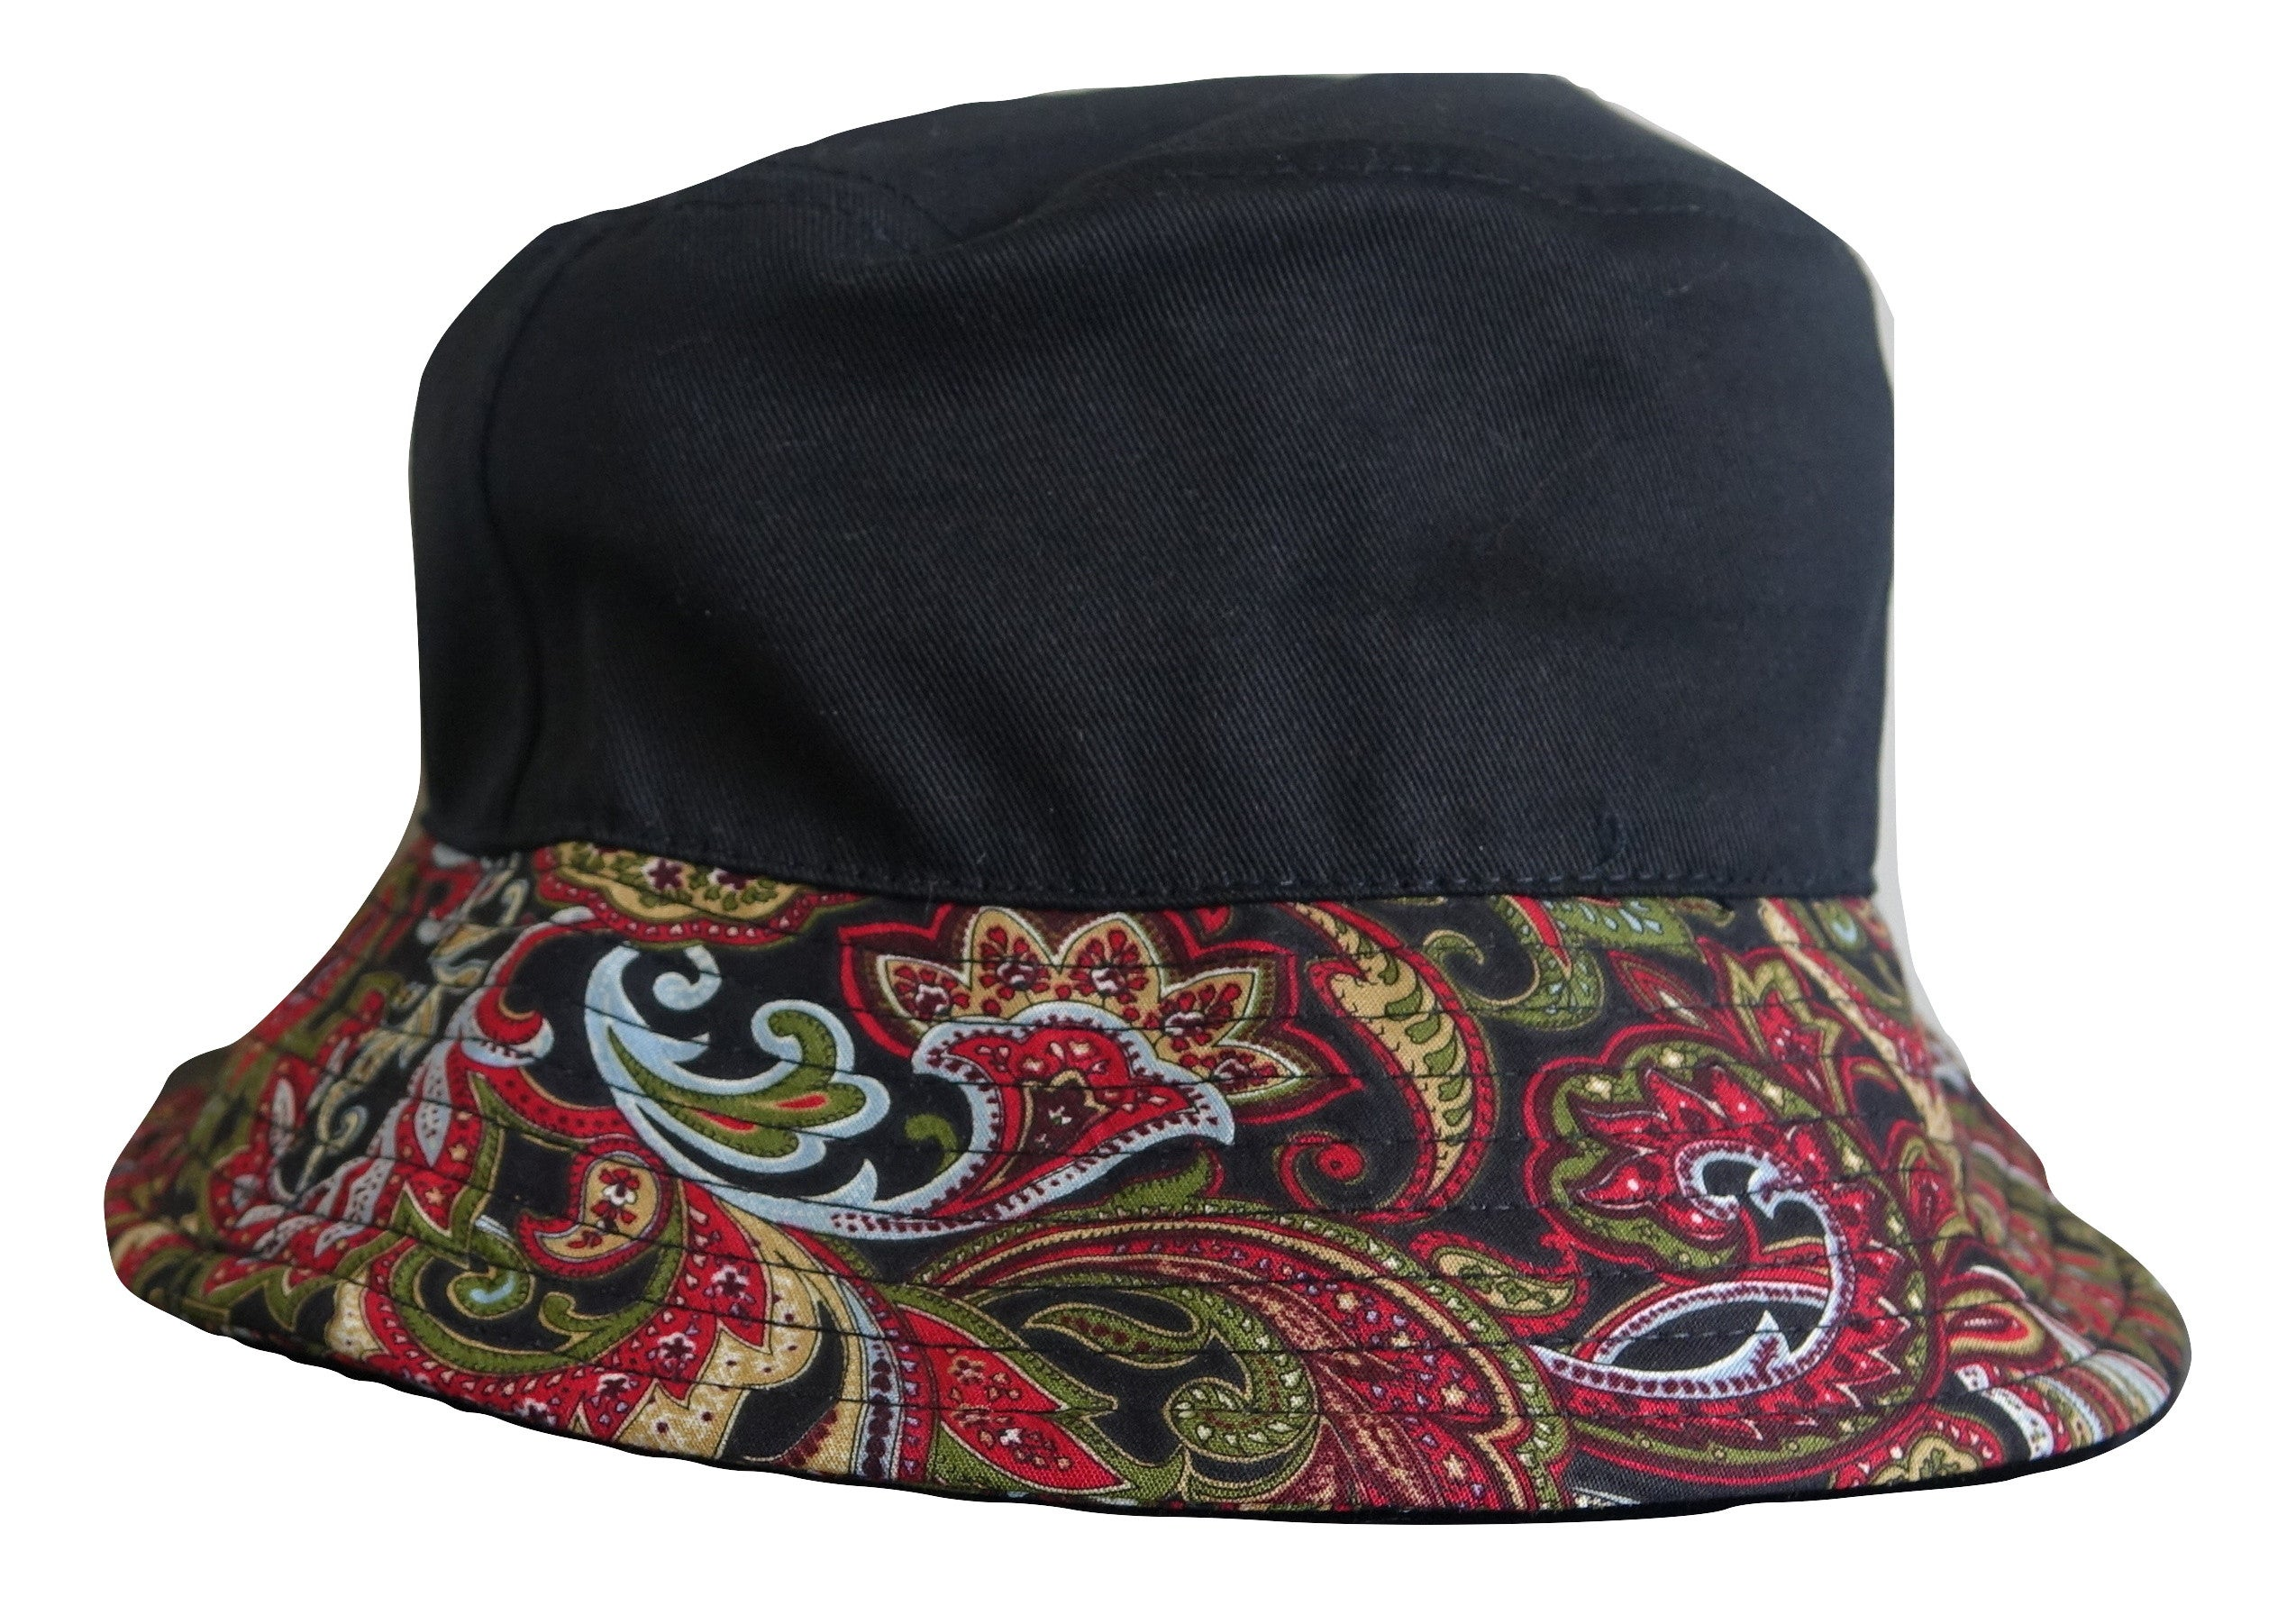 e3c0b5add4d Paisley bucket hat persuade clothing jpg 2000x1391 Paisley hat